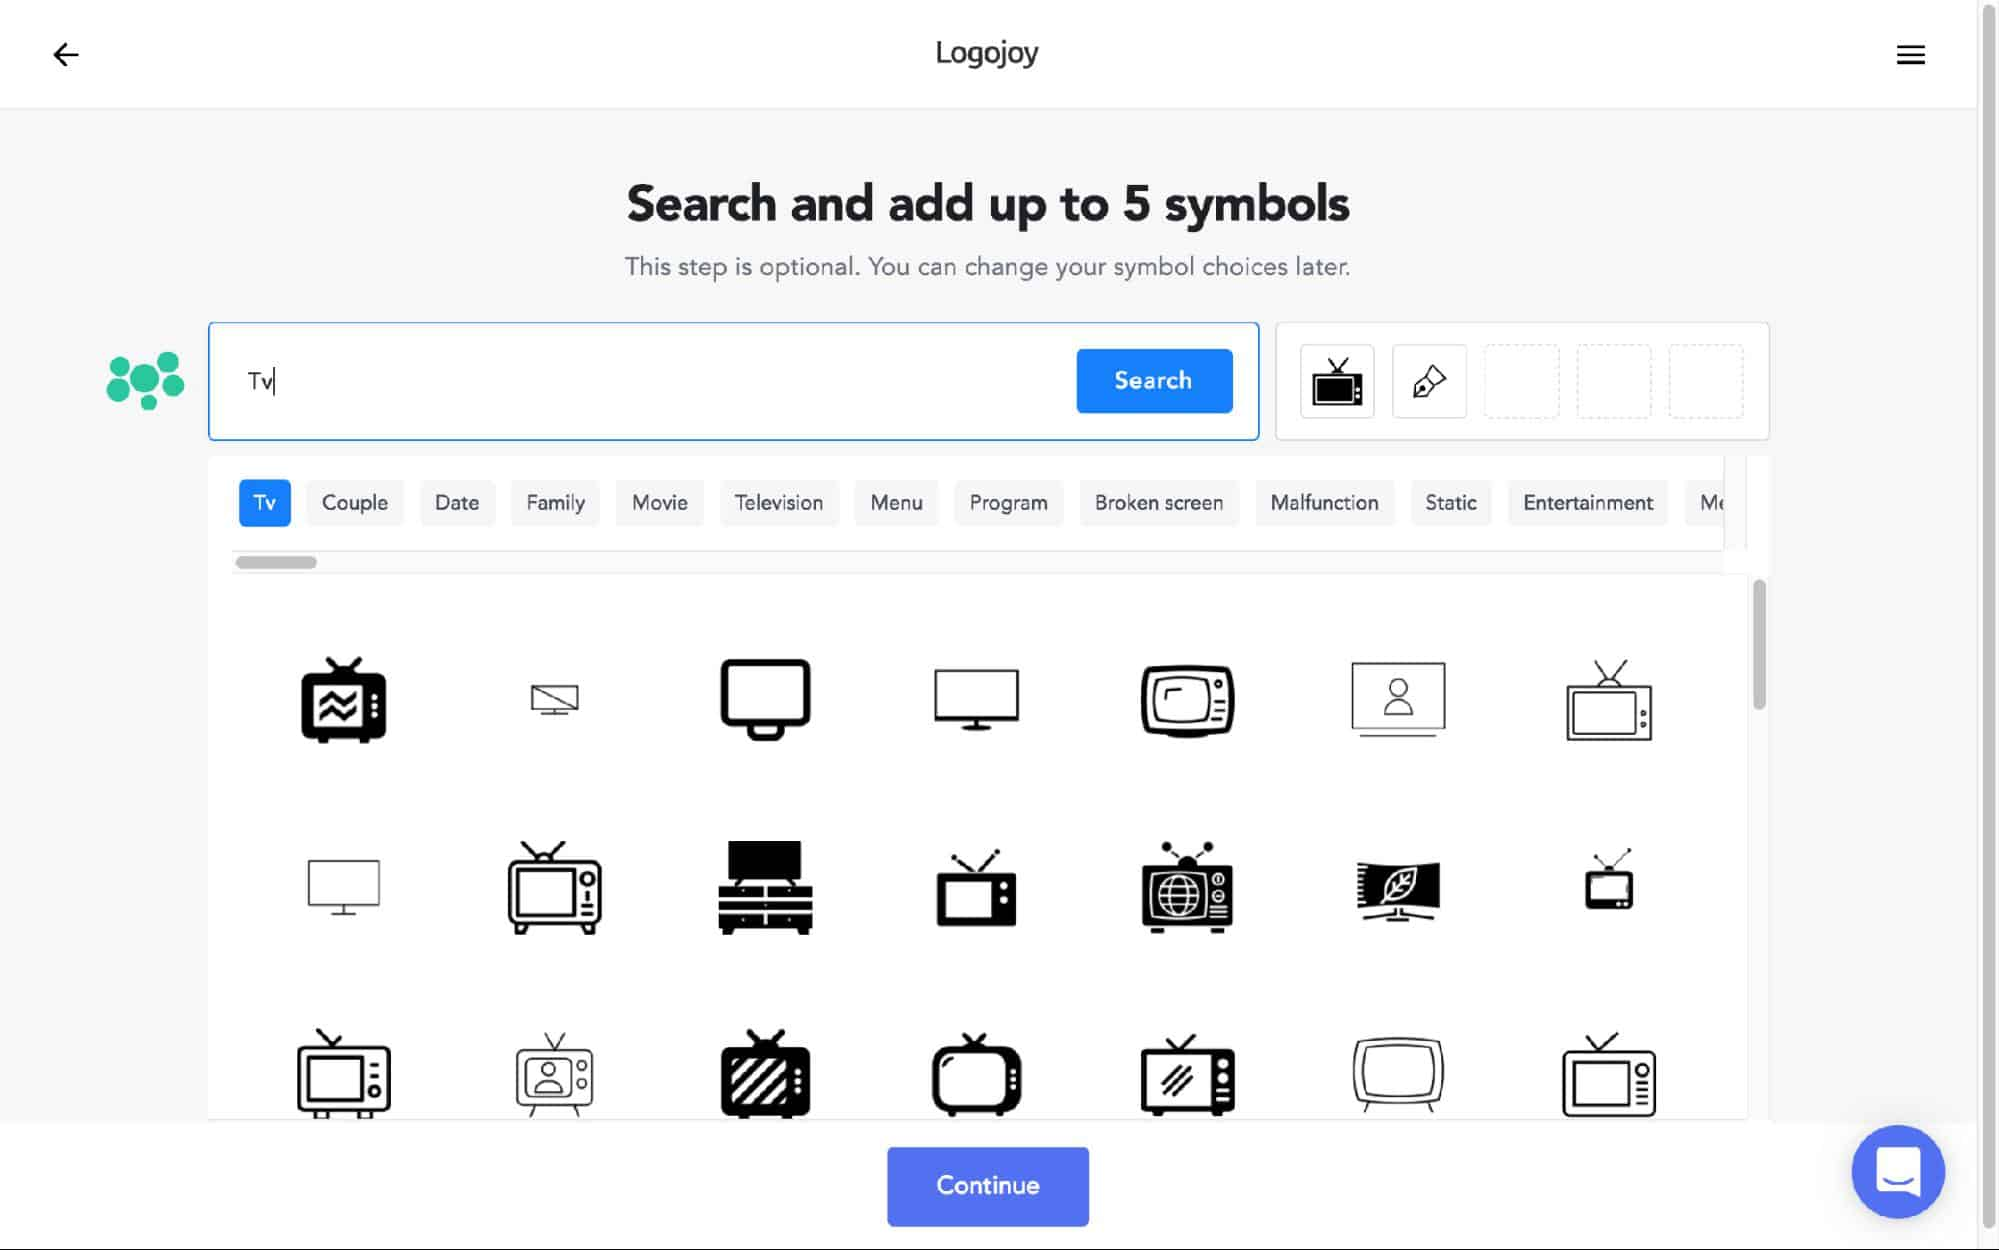 Logojoy search